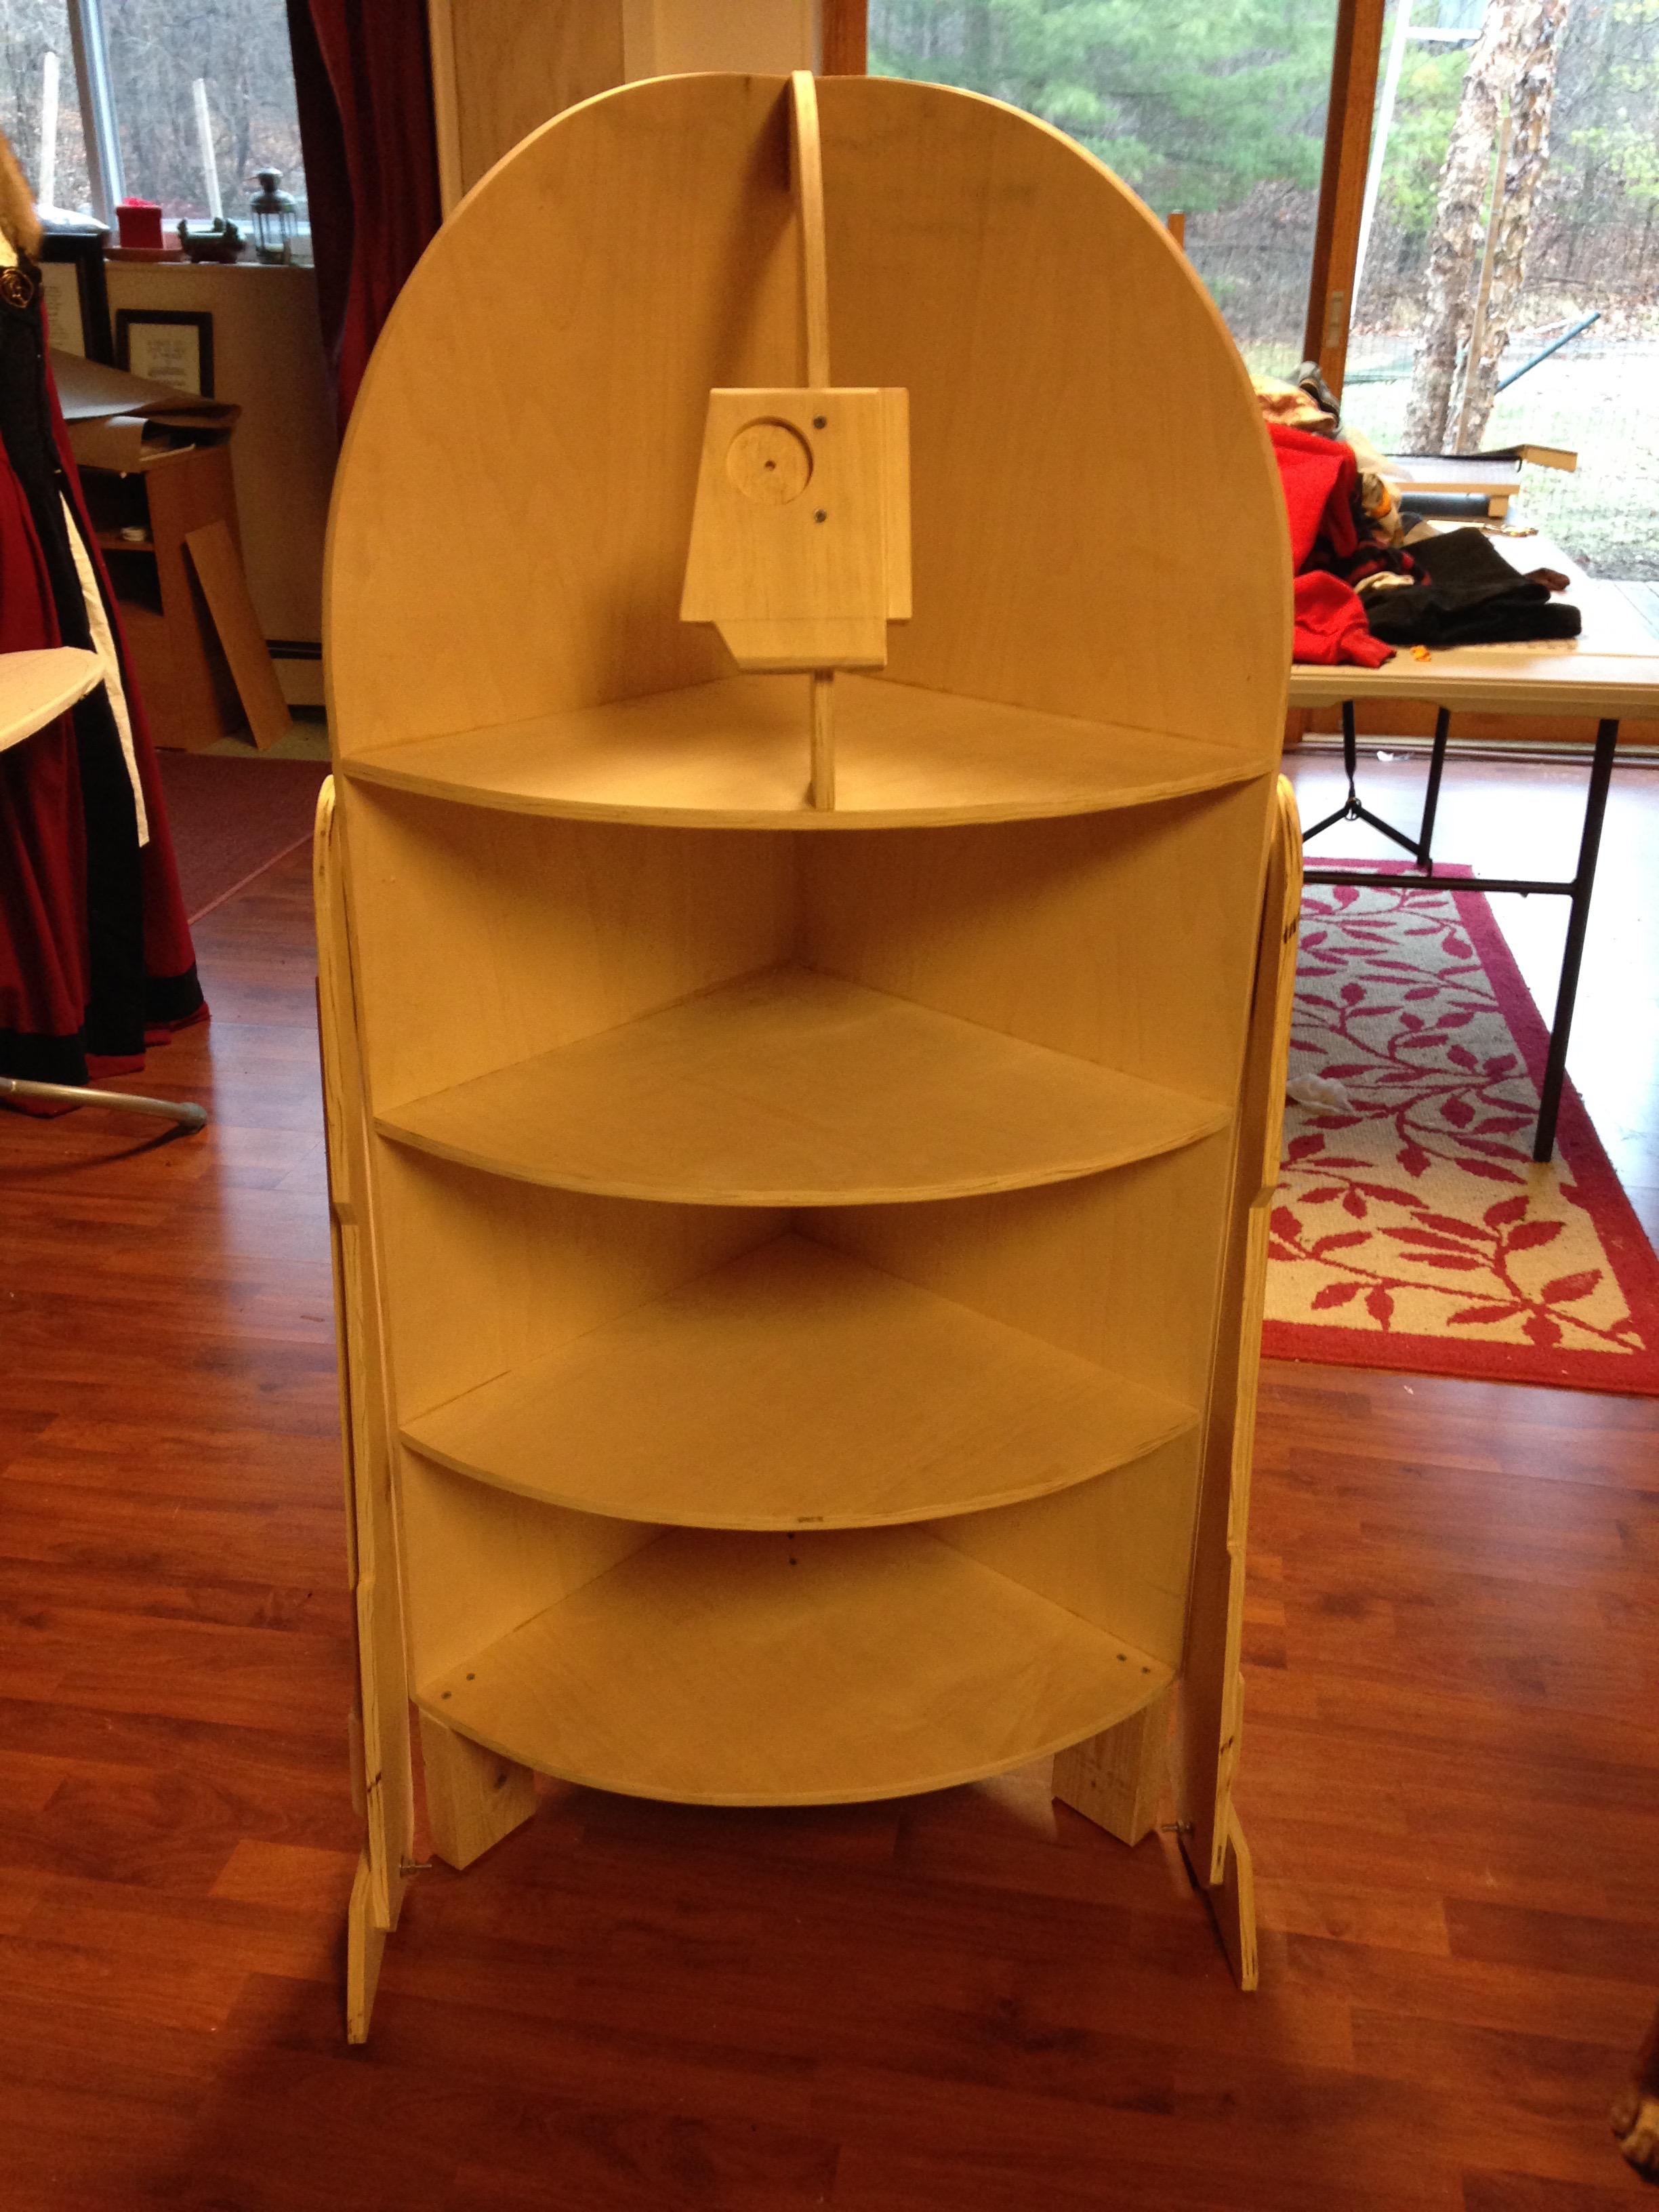 How to make a Star Wars R2-D2 corner shelf from a sheet of plywood. | JenuineMom.com